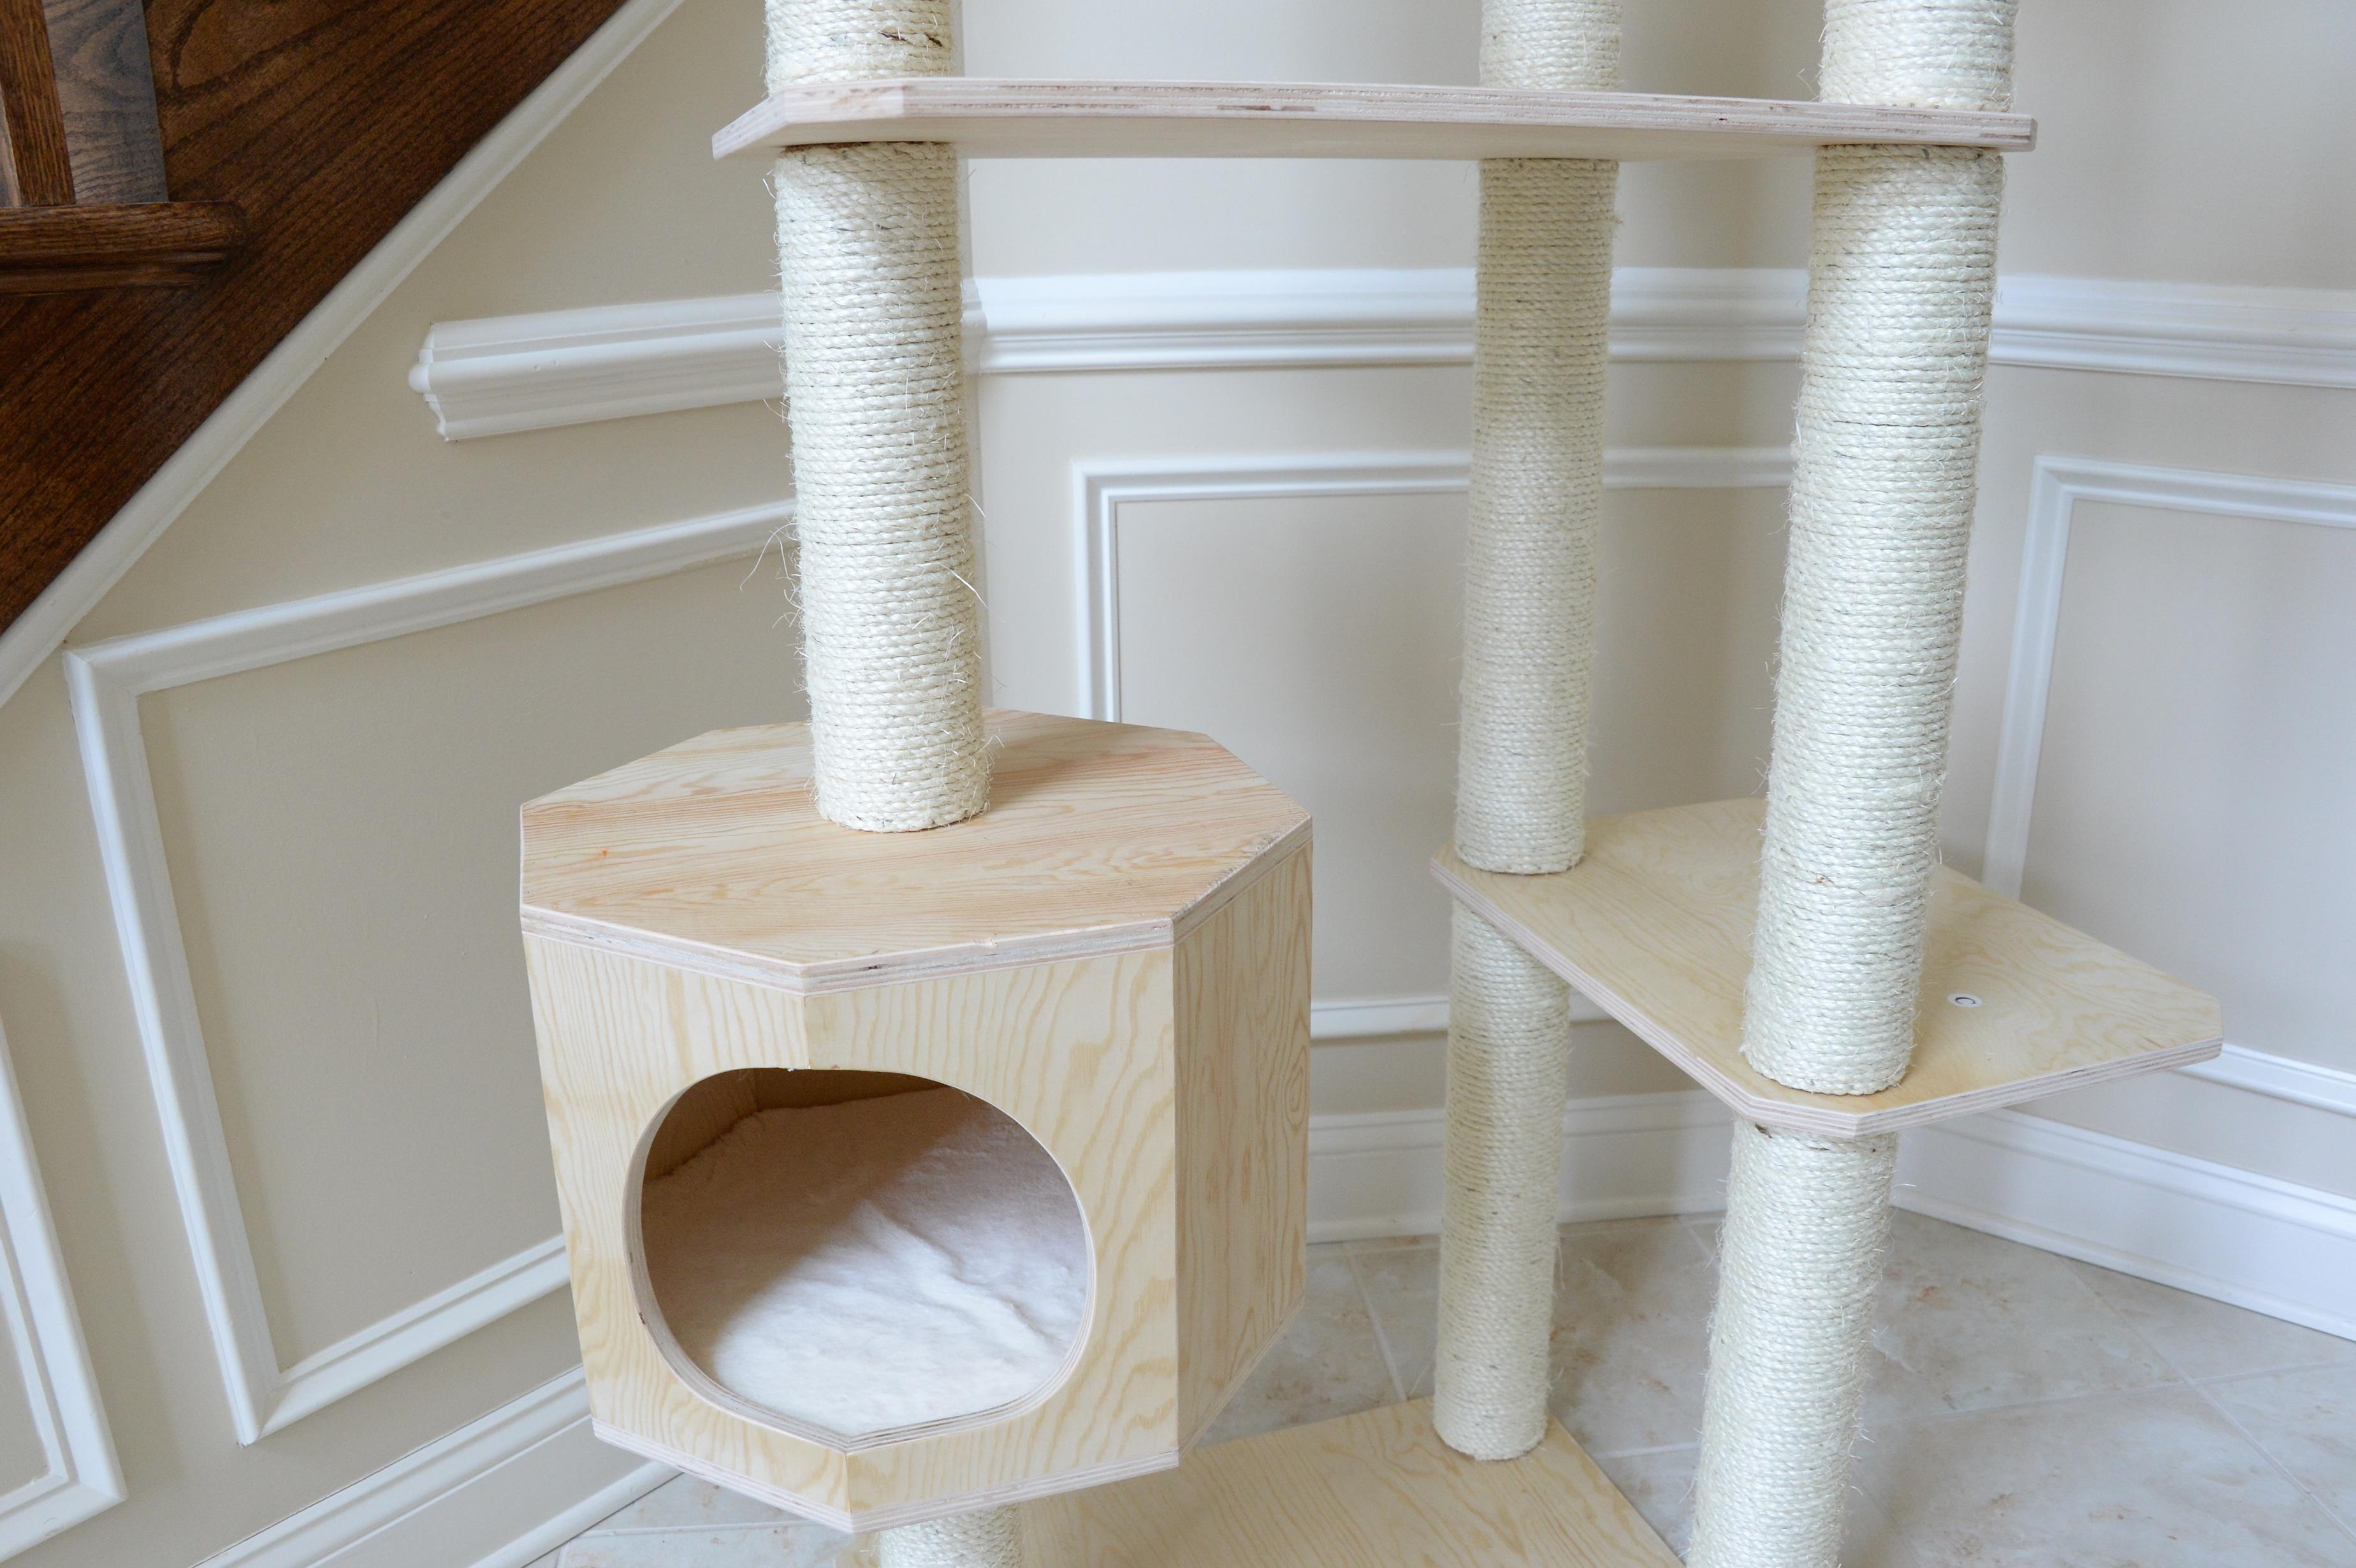 New design armarkat solid wood cat tree condo furniture for Wooden cat tree designs